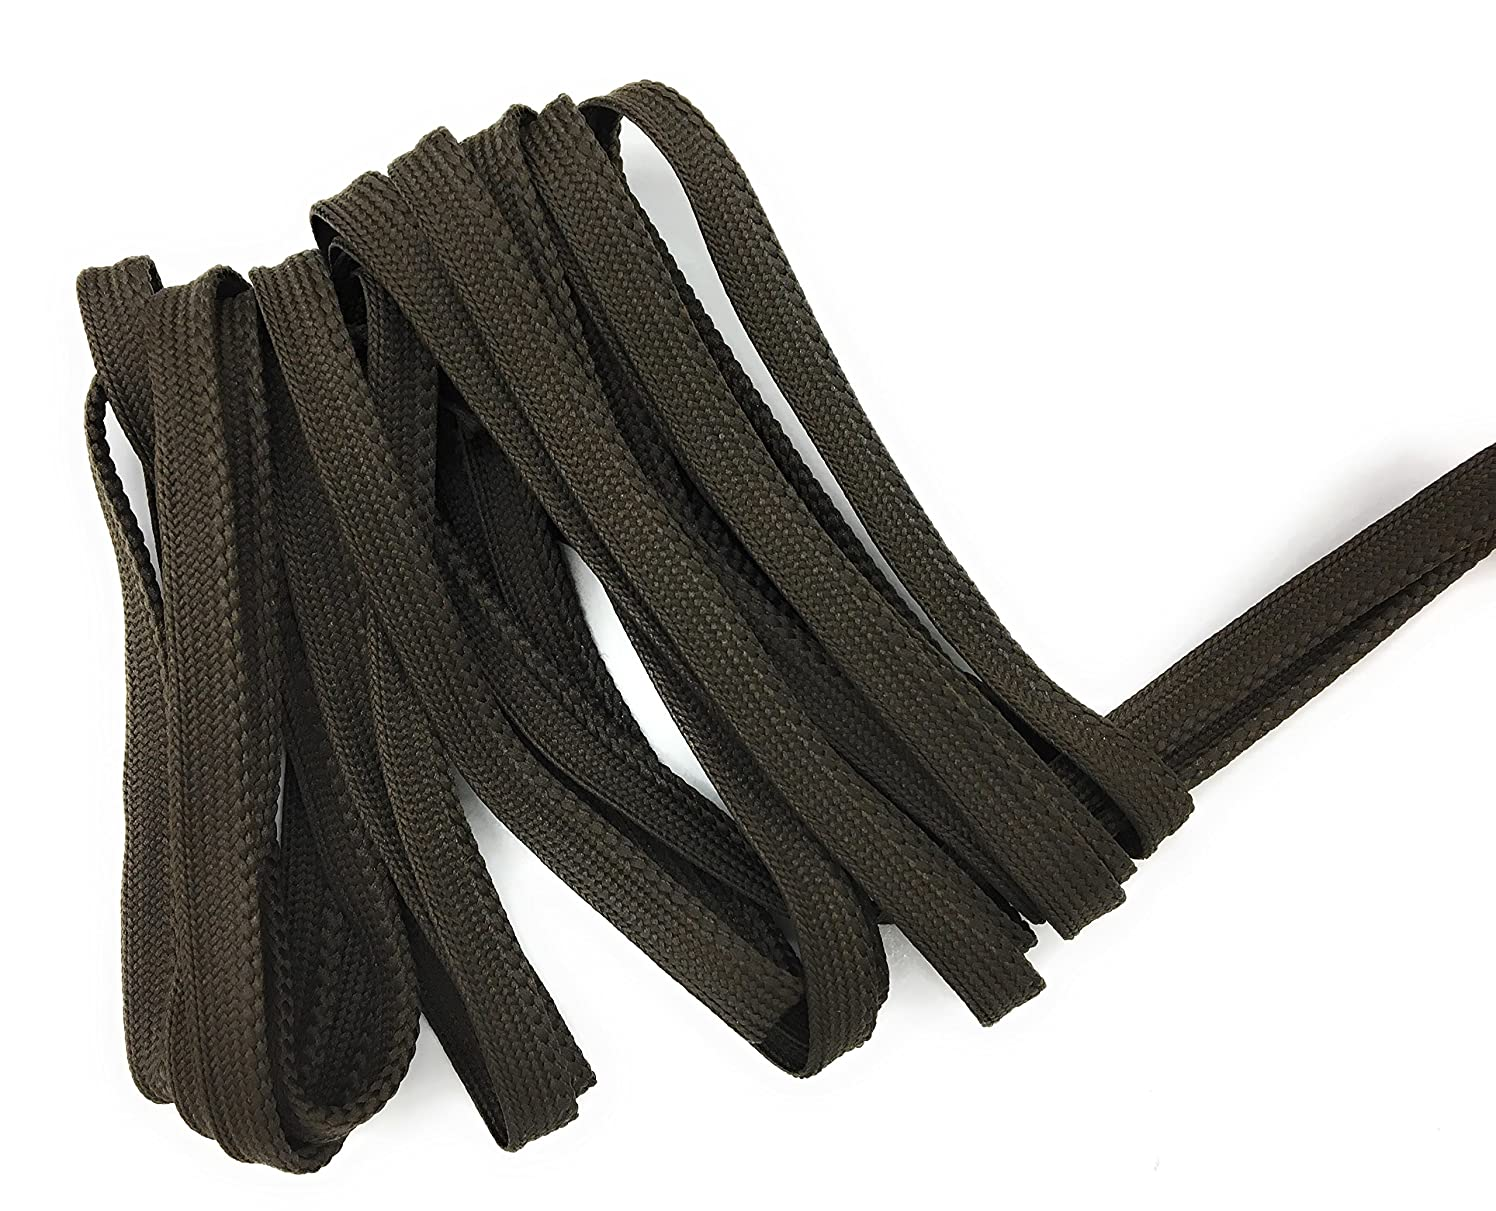 Cord-edge -Piping Trim Brown weave -Lip Cord for Clothing Pillows, Lamps, Draperies 5 Yards Pi-129/108